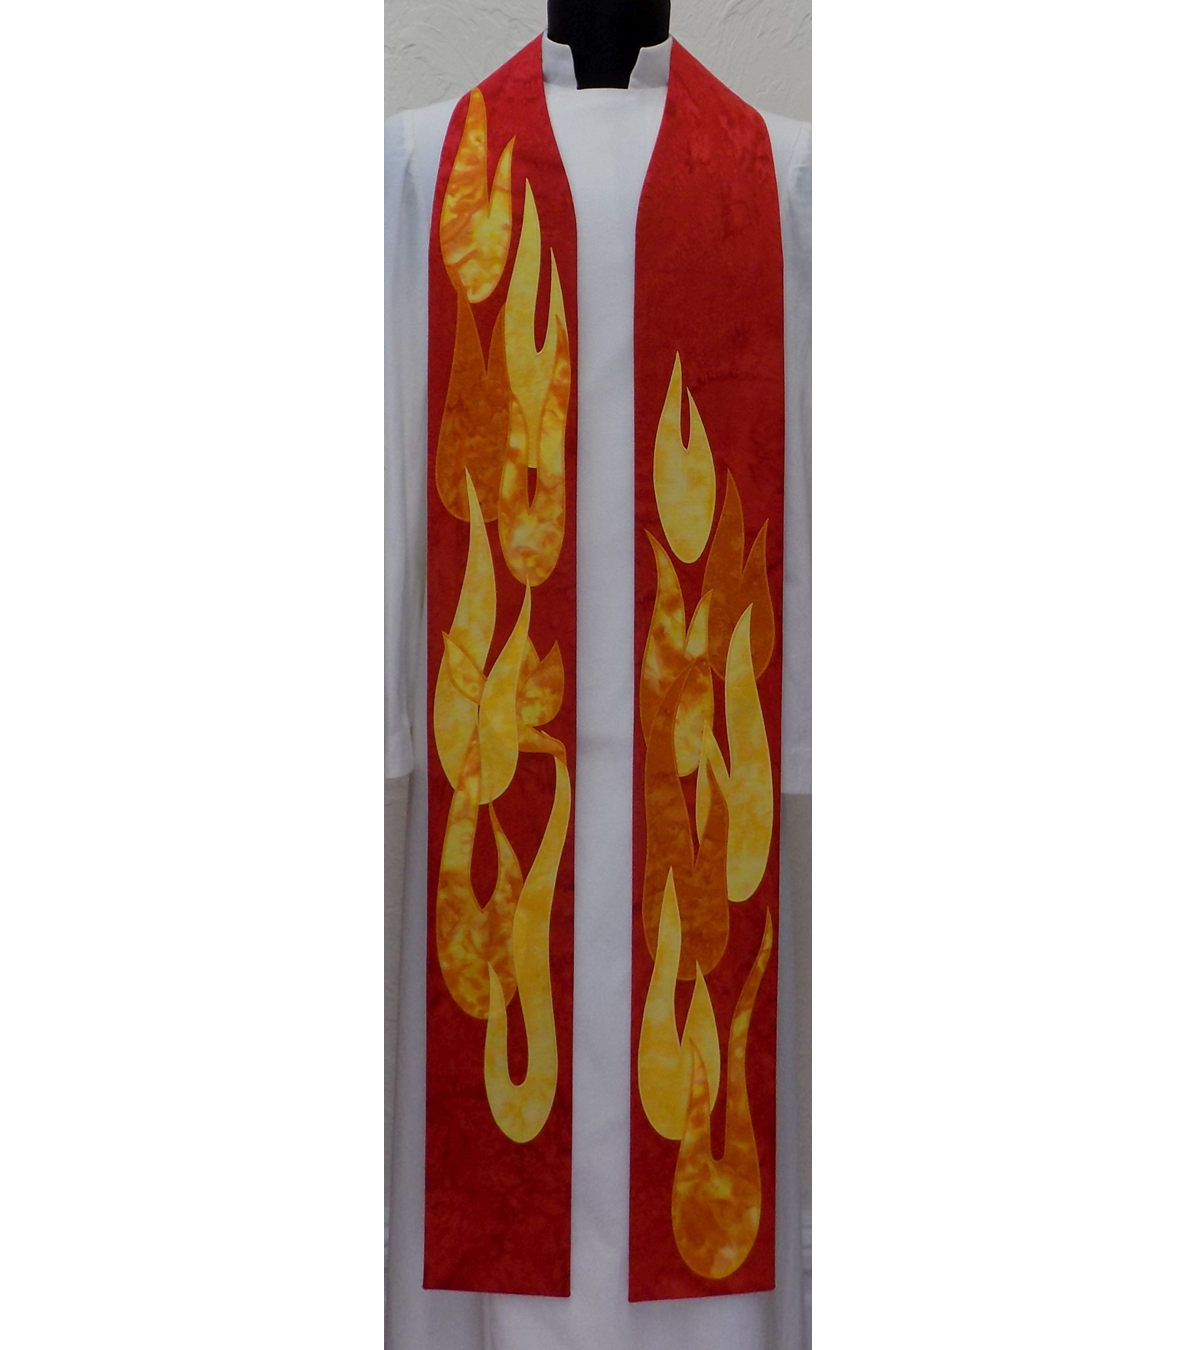 hot sale online 79bf0 2661b The Dance of the Holy Spirit: Red Clergy Stole for Pentecost and Ordinations